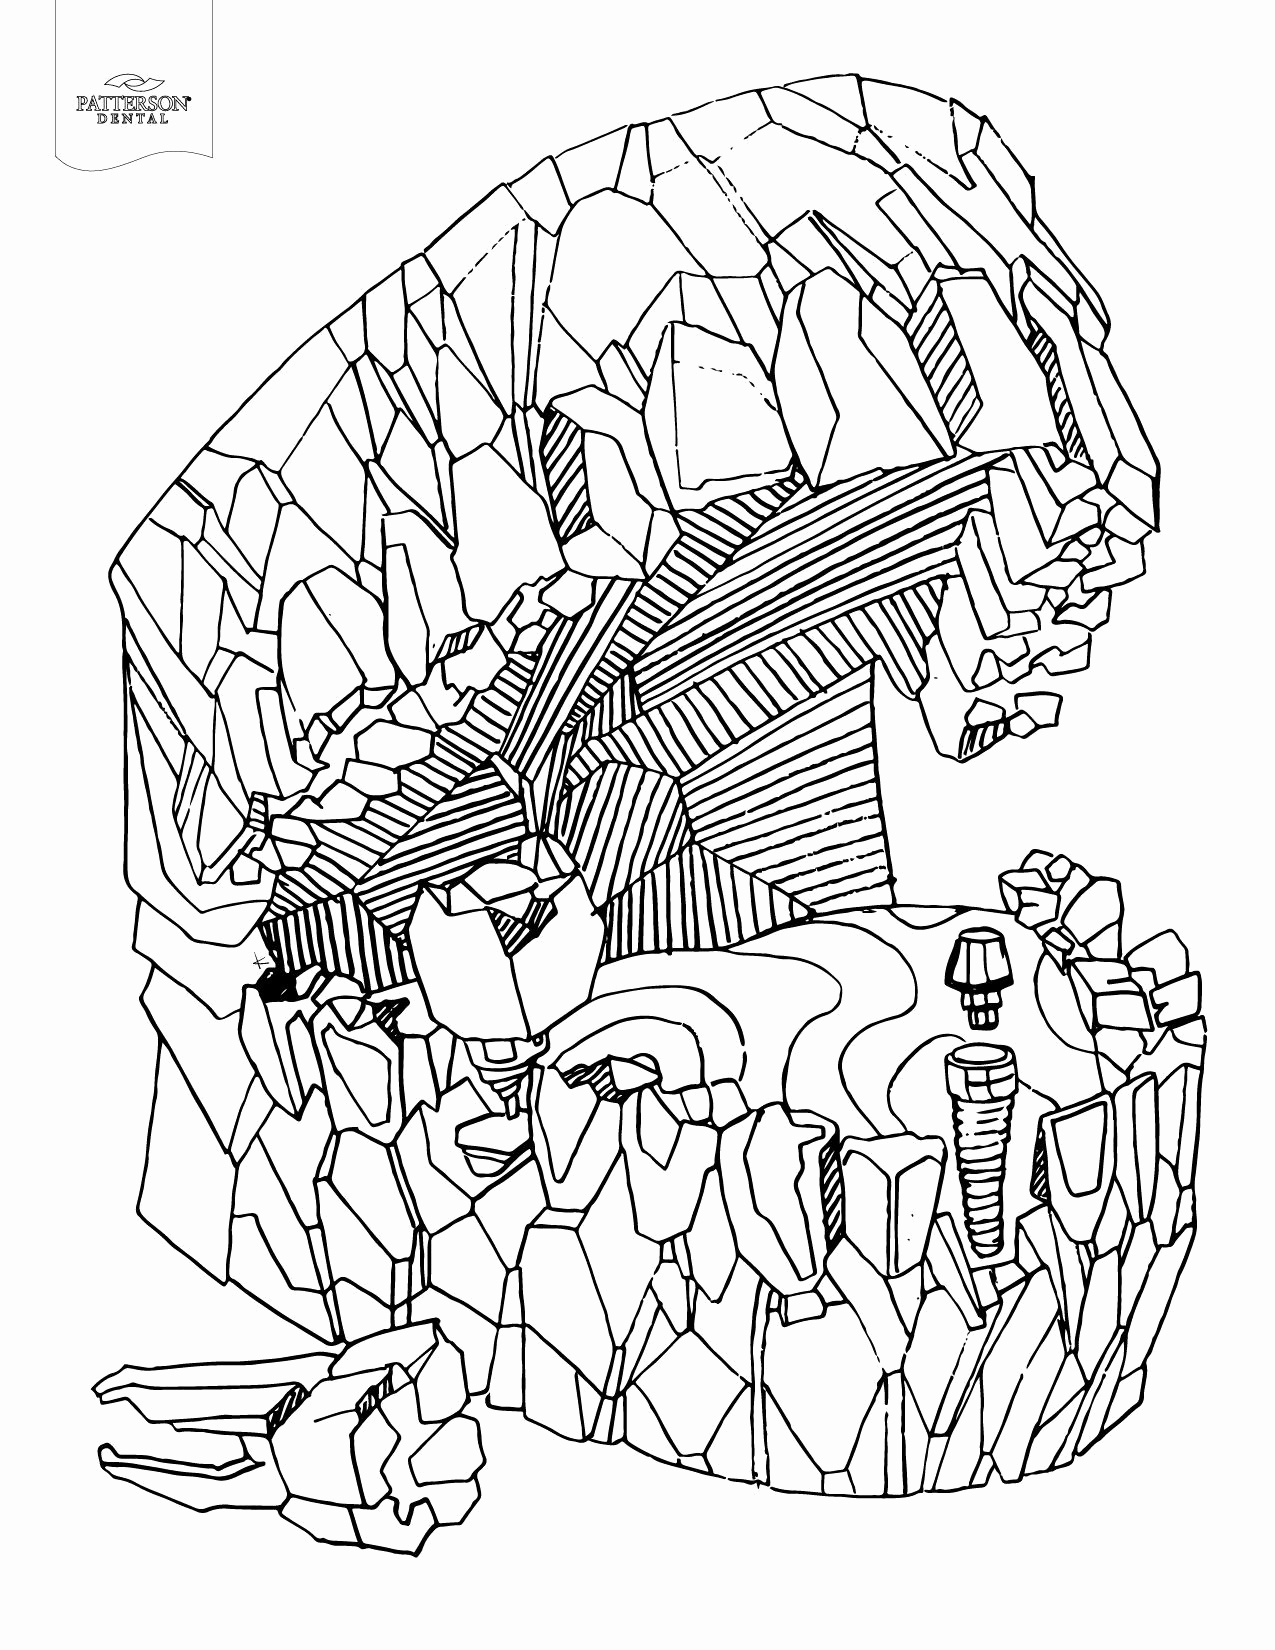 Moana Coloring Pages Printable At Getcolorings